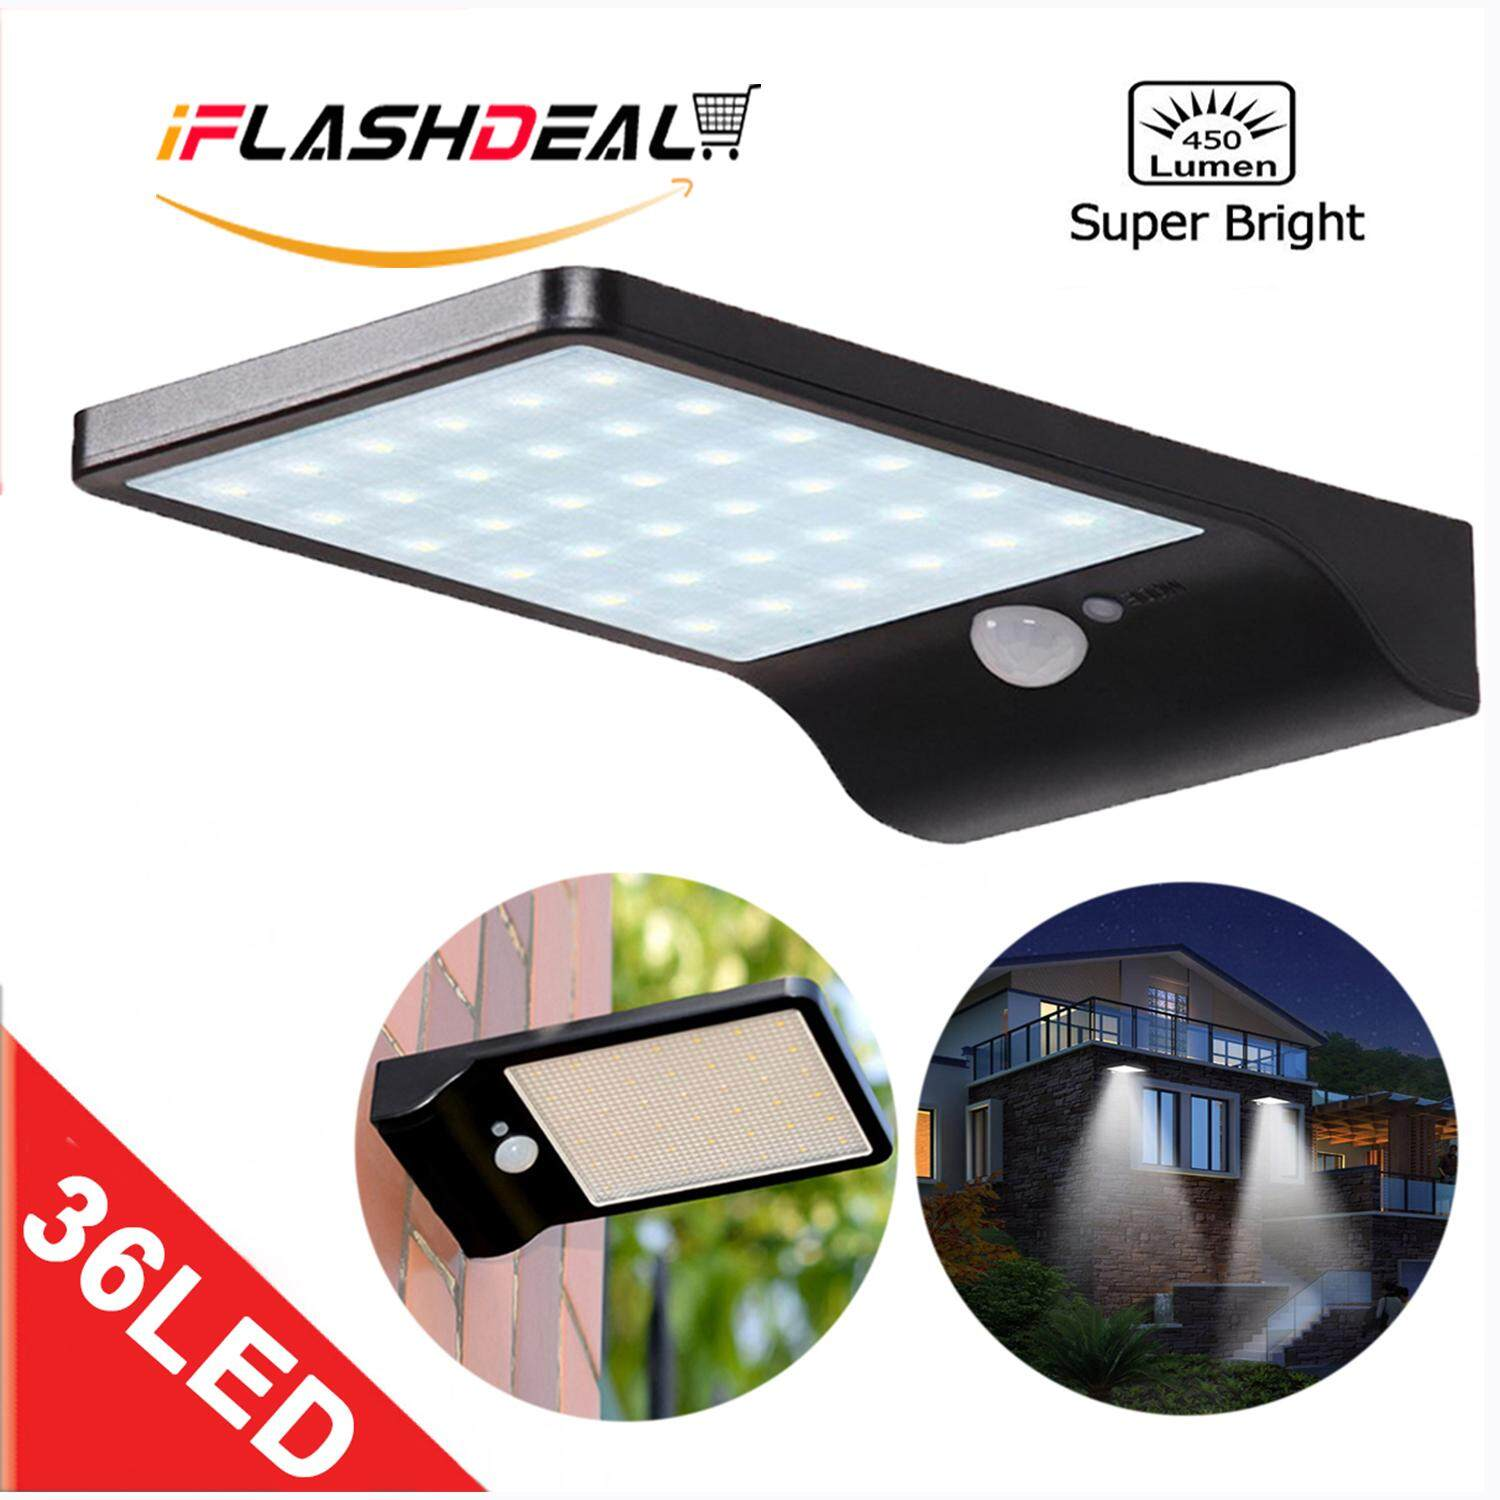 iFlashDeal 36 LED Solar lights Outdoor Lighting Wall Power Street Light Motion Sensor Detector Light Security Lamp Garden 450LM Singapore